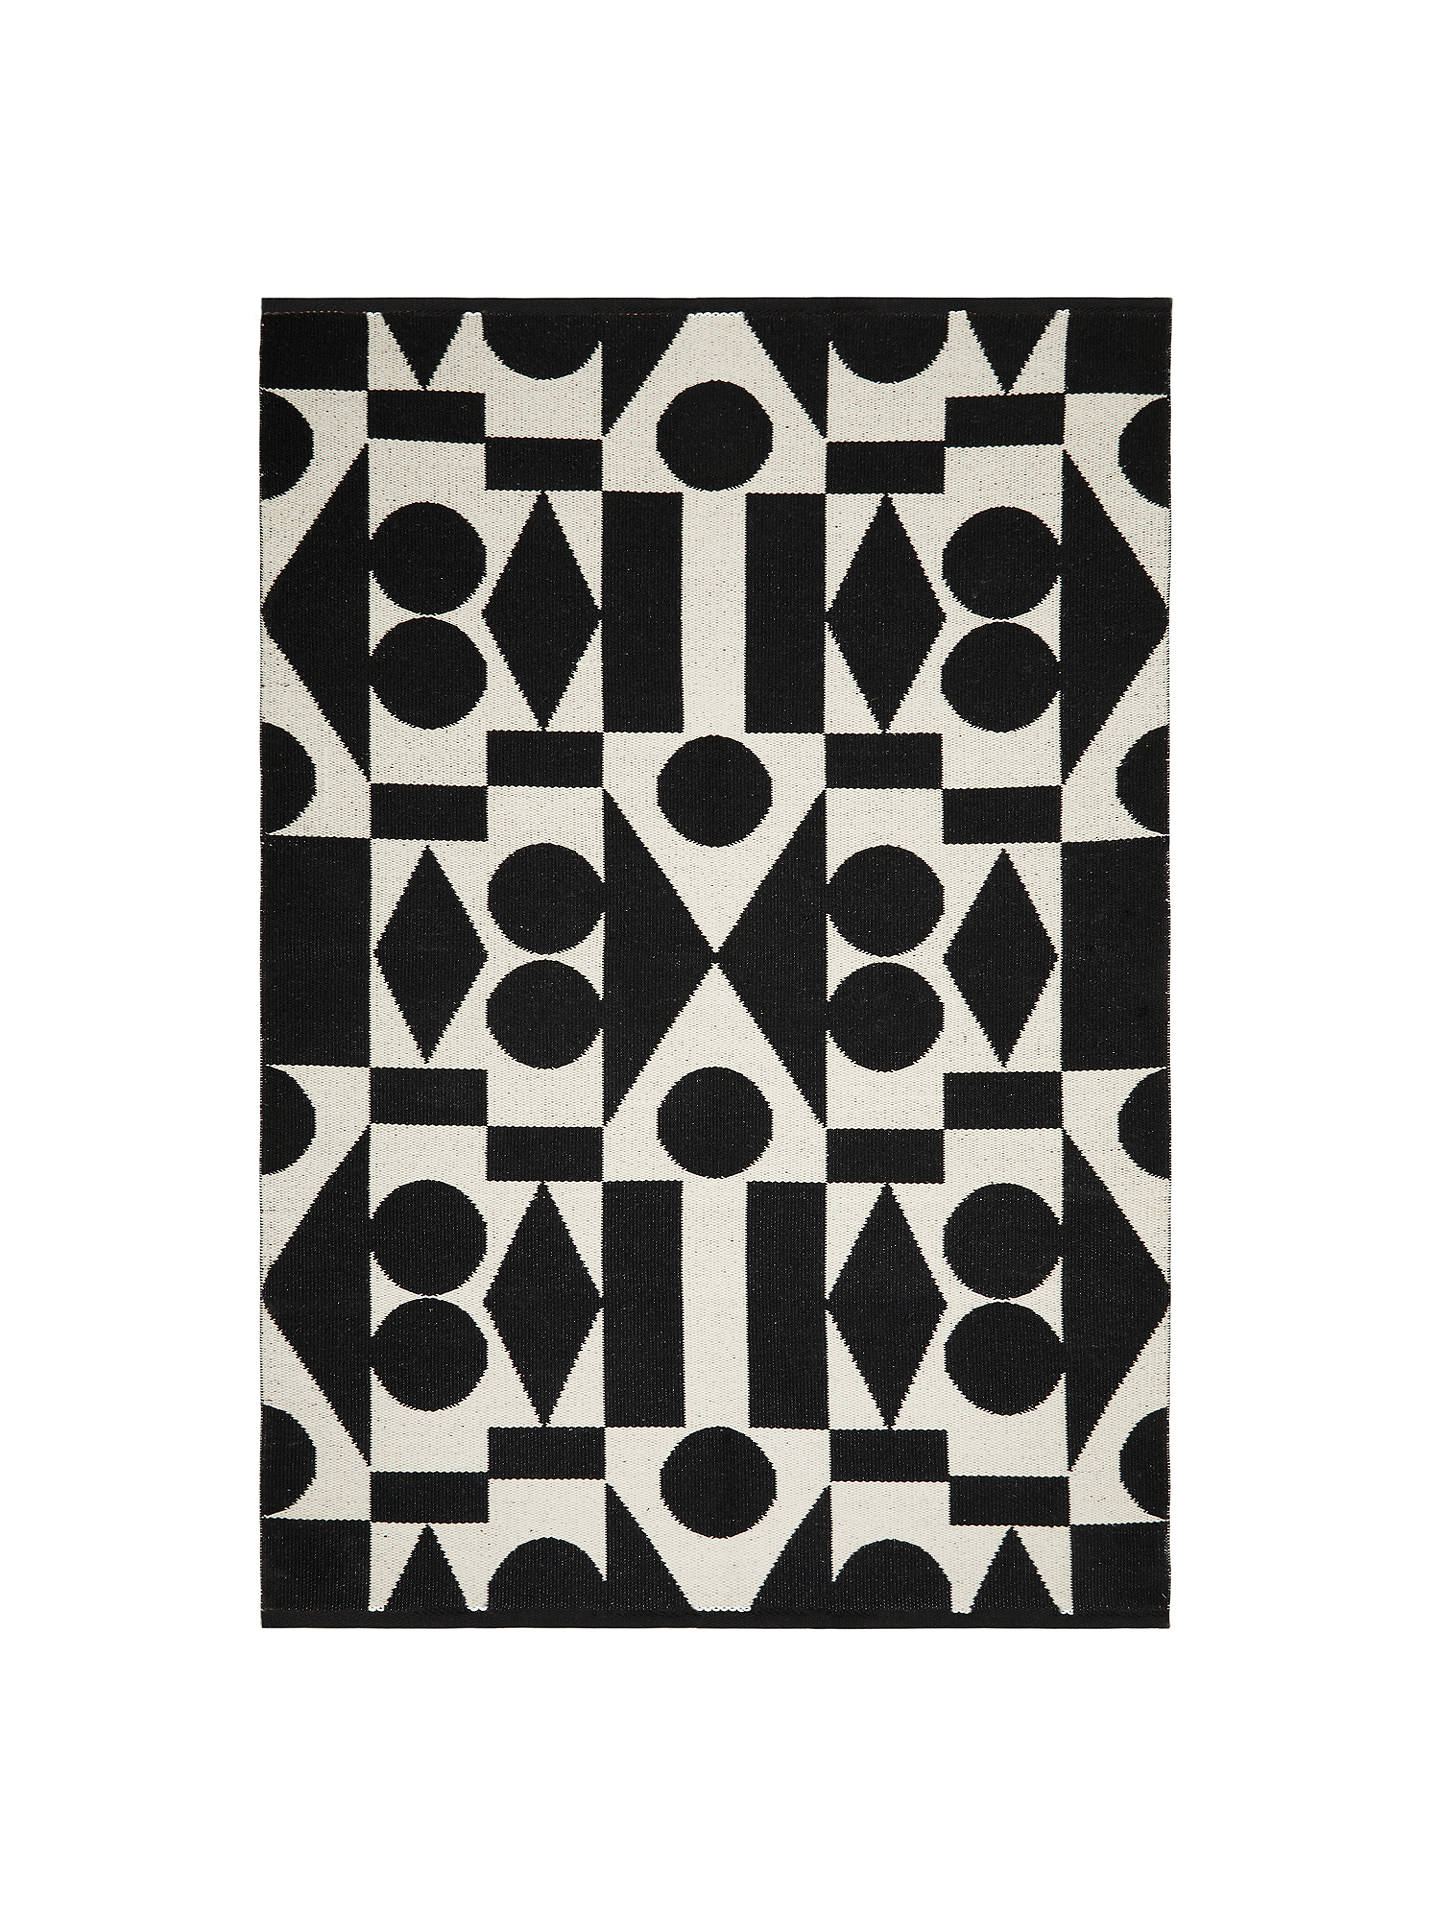 BuyPATTERNITY + John Lewis Ritual Reflect Rug, Black/White, L240 x W170cm Online at johnlewis.com